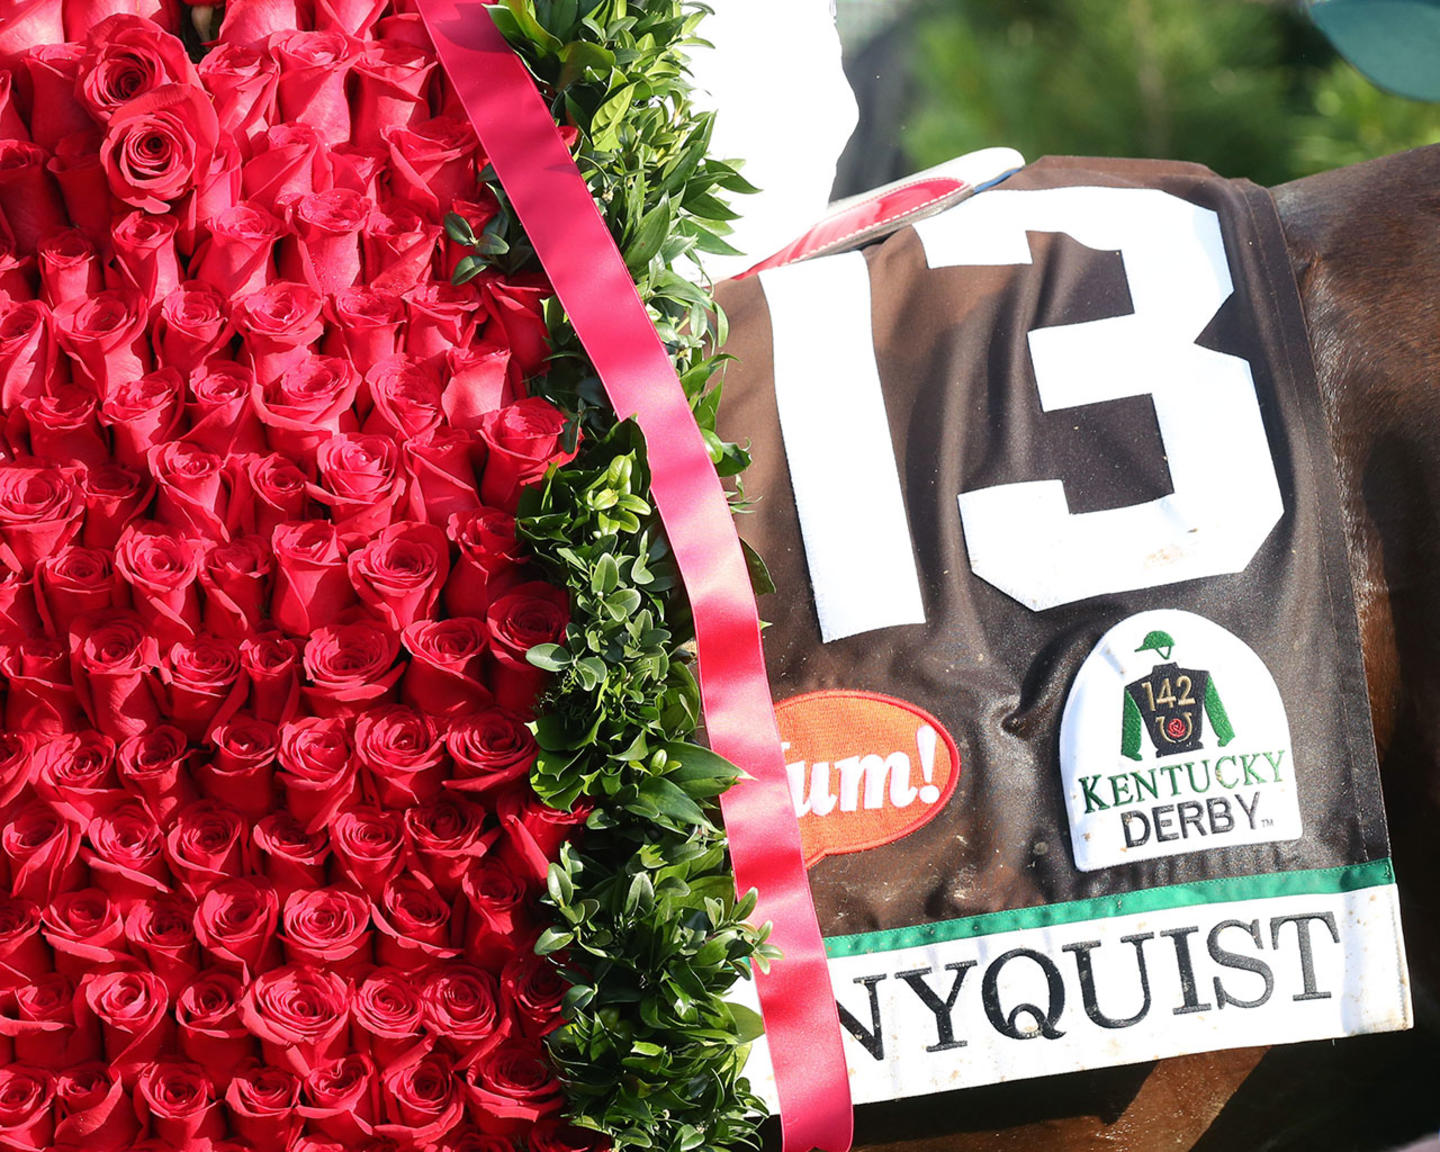 NYQUIST-The-Kentucky-Derby6